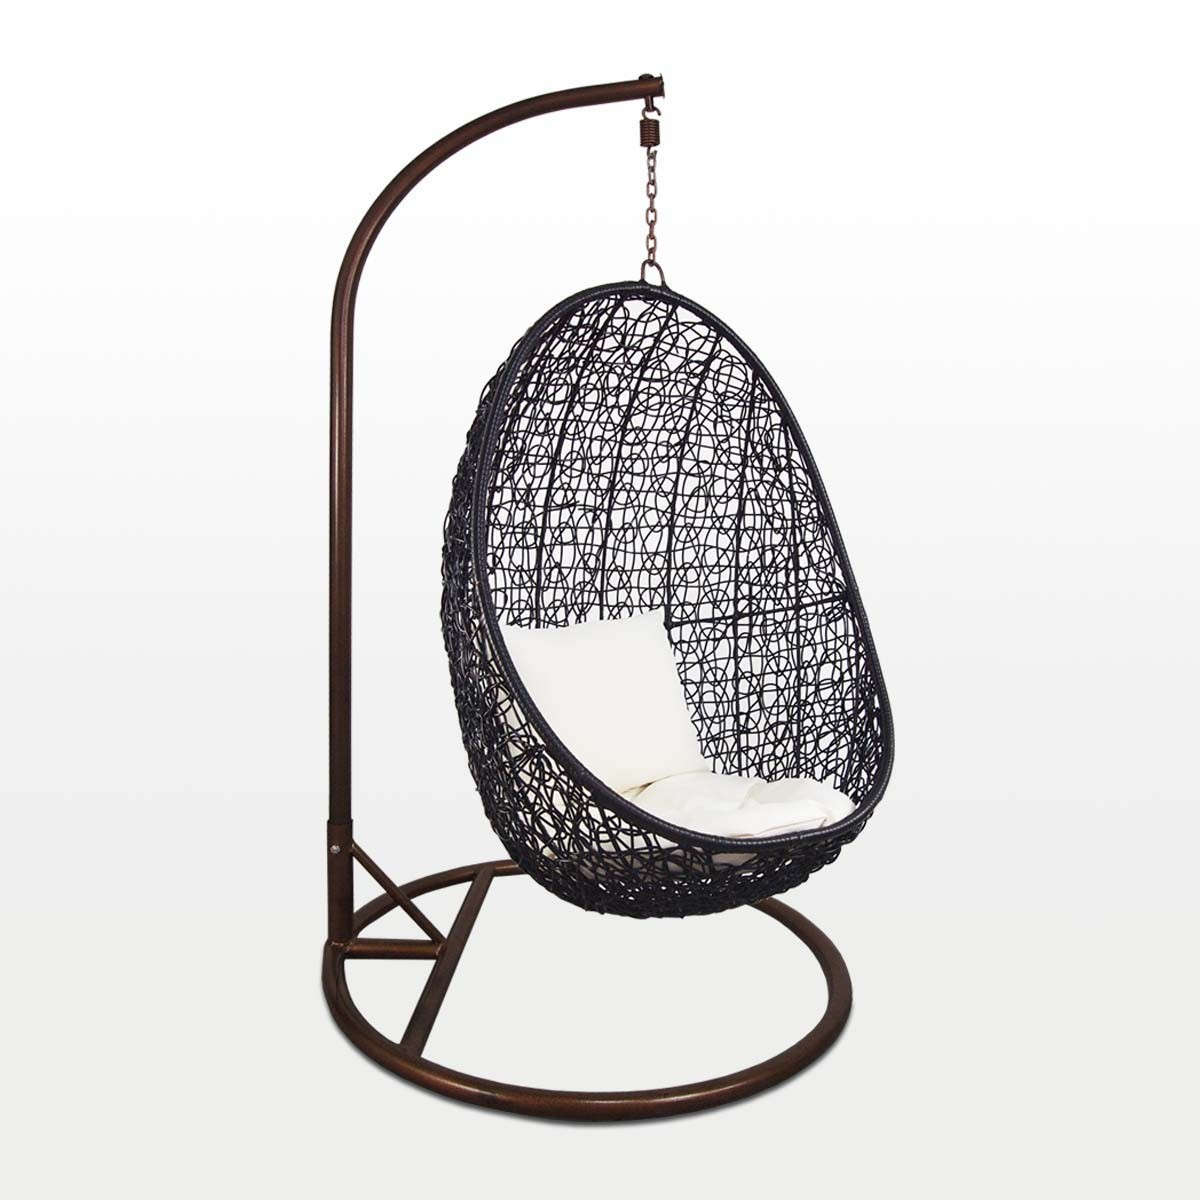 Swing Chairs Black Cocoon Swing Chair White Cushion Furniture And Home